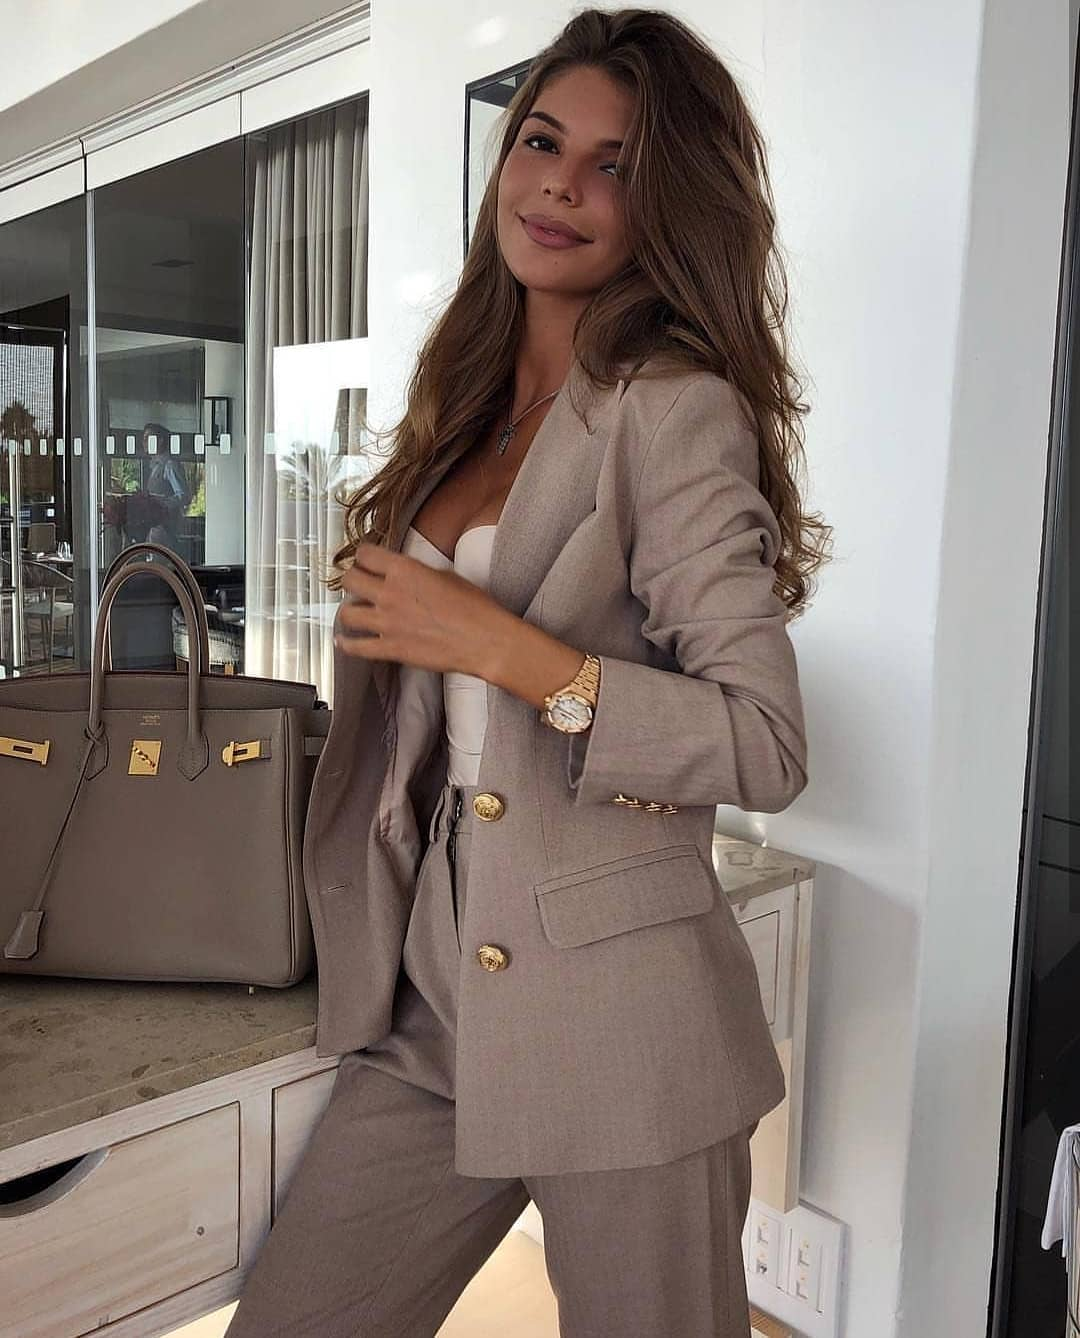 Grey Pantsuit For Summer Work Hours 2020